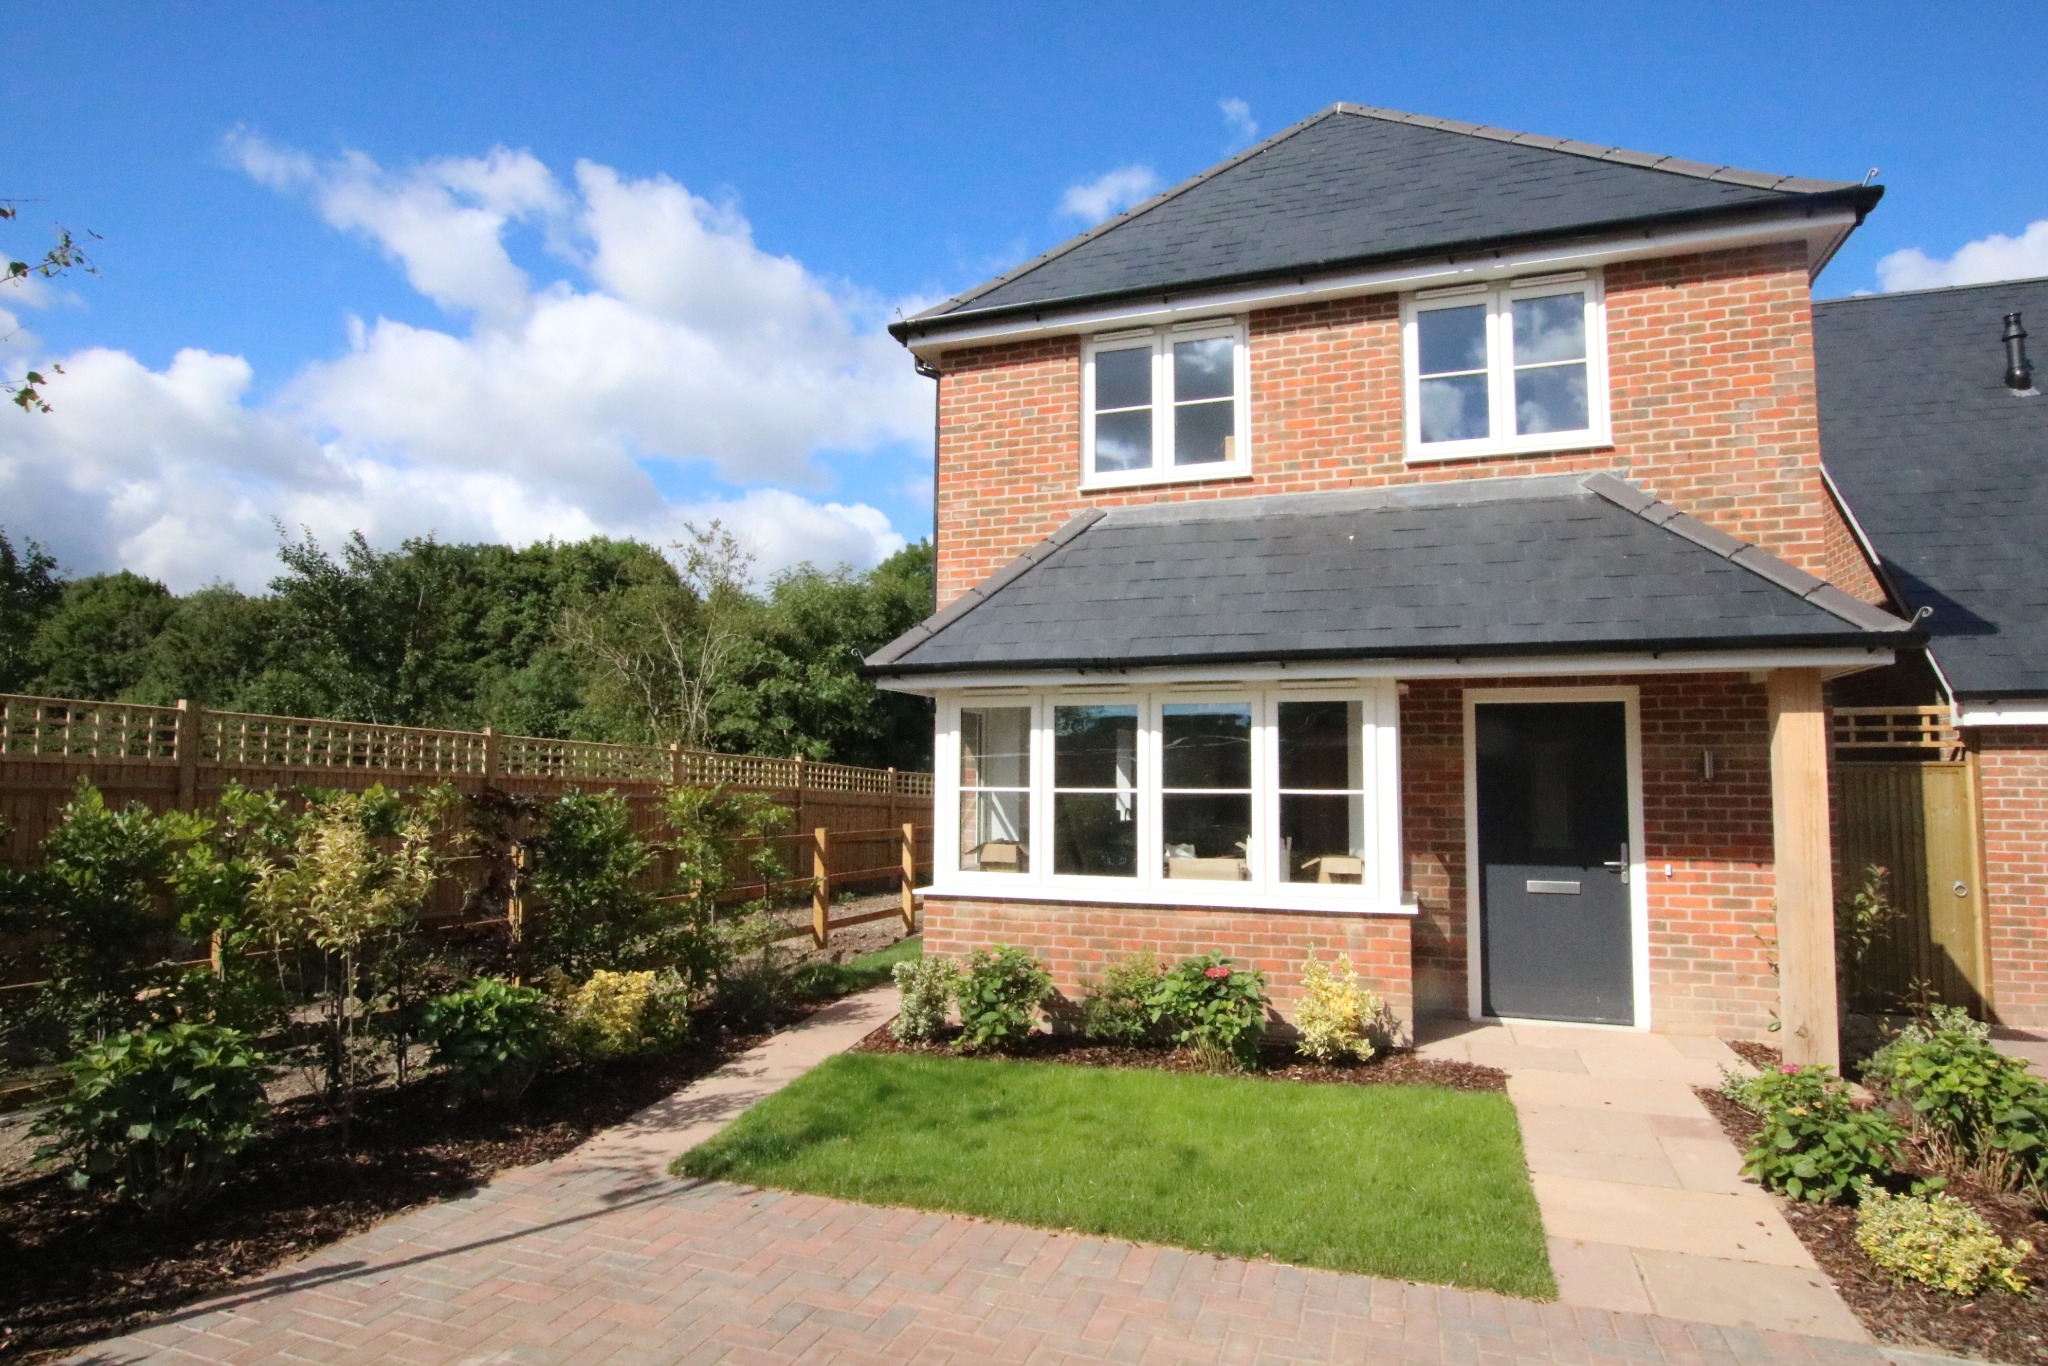 Brand New Three Bed Detached House With Help To Buy And Ready To Move In!